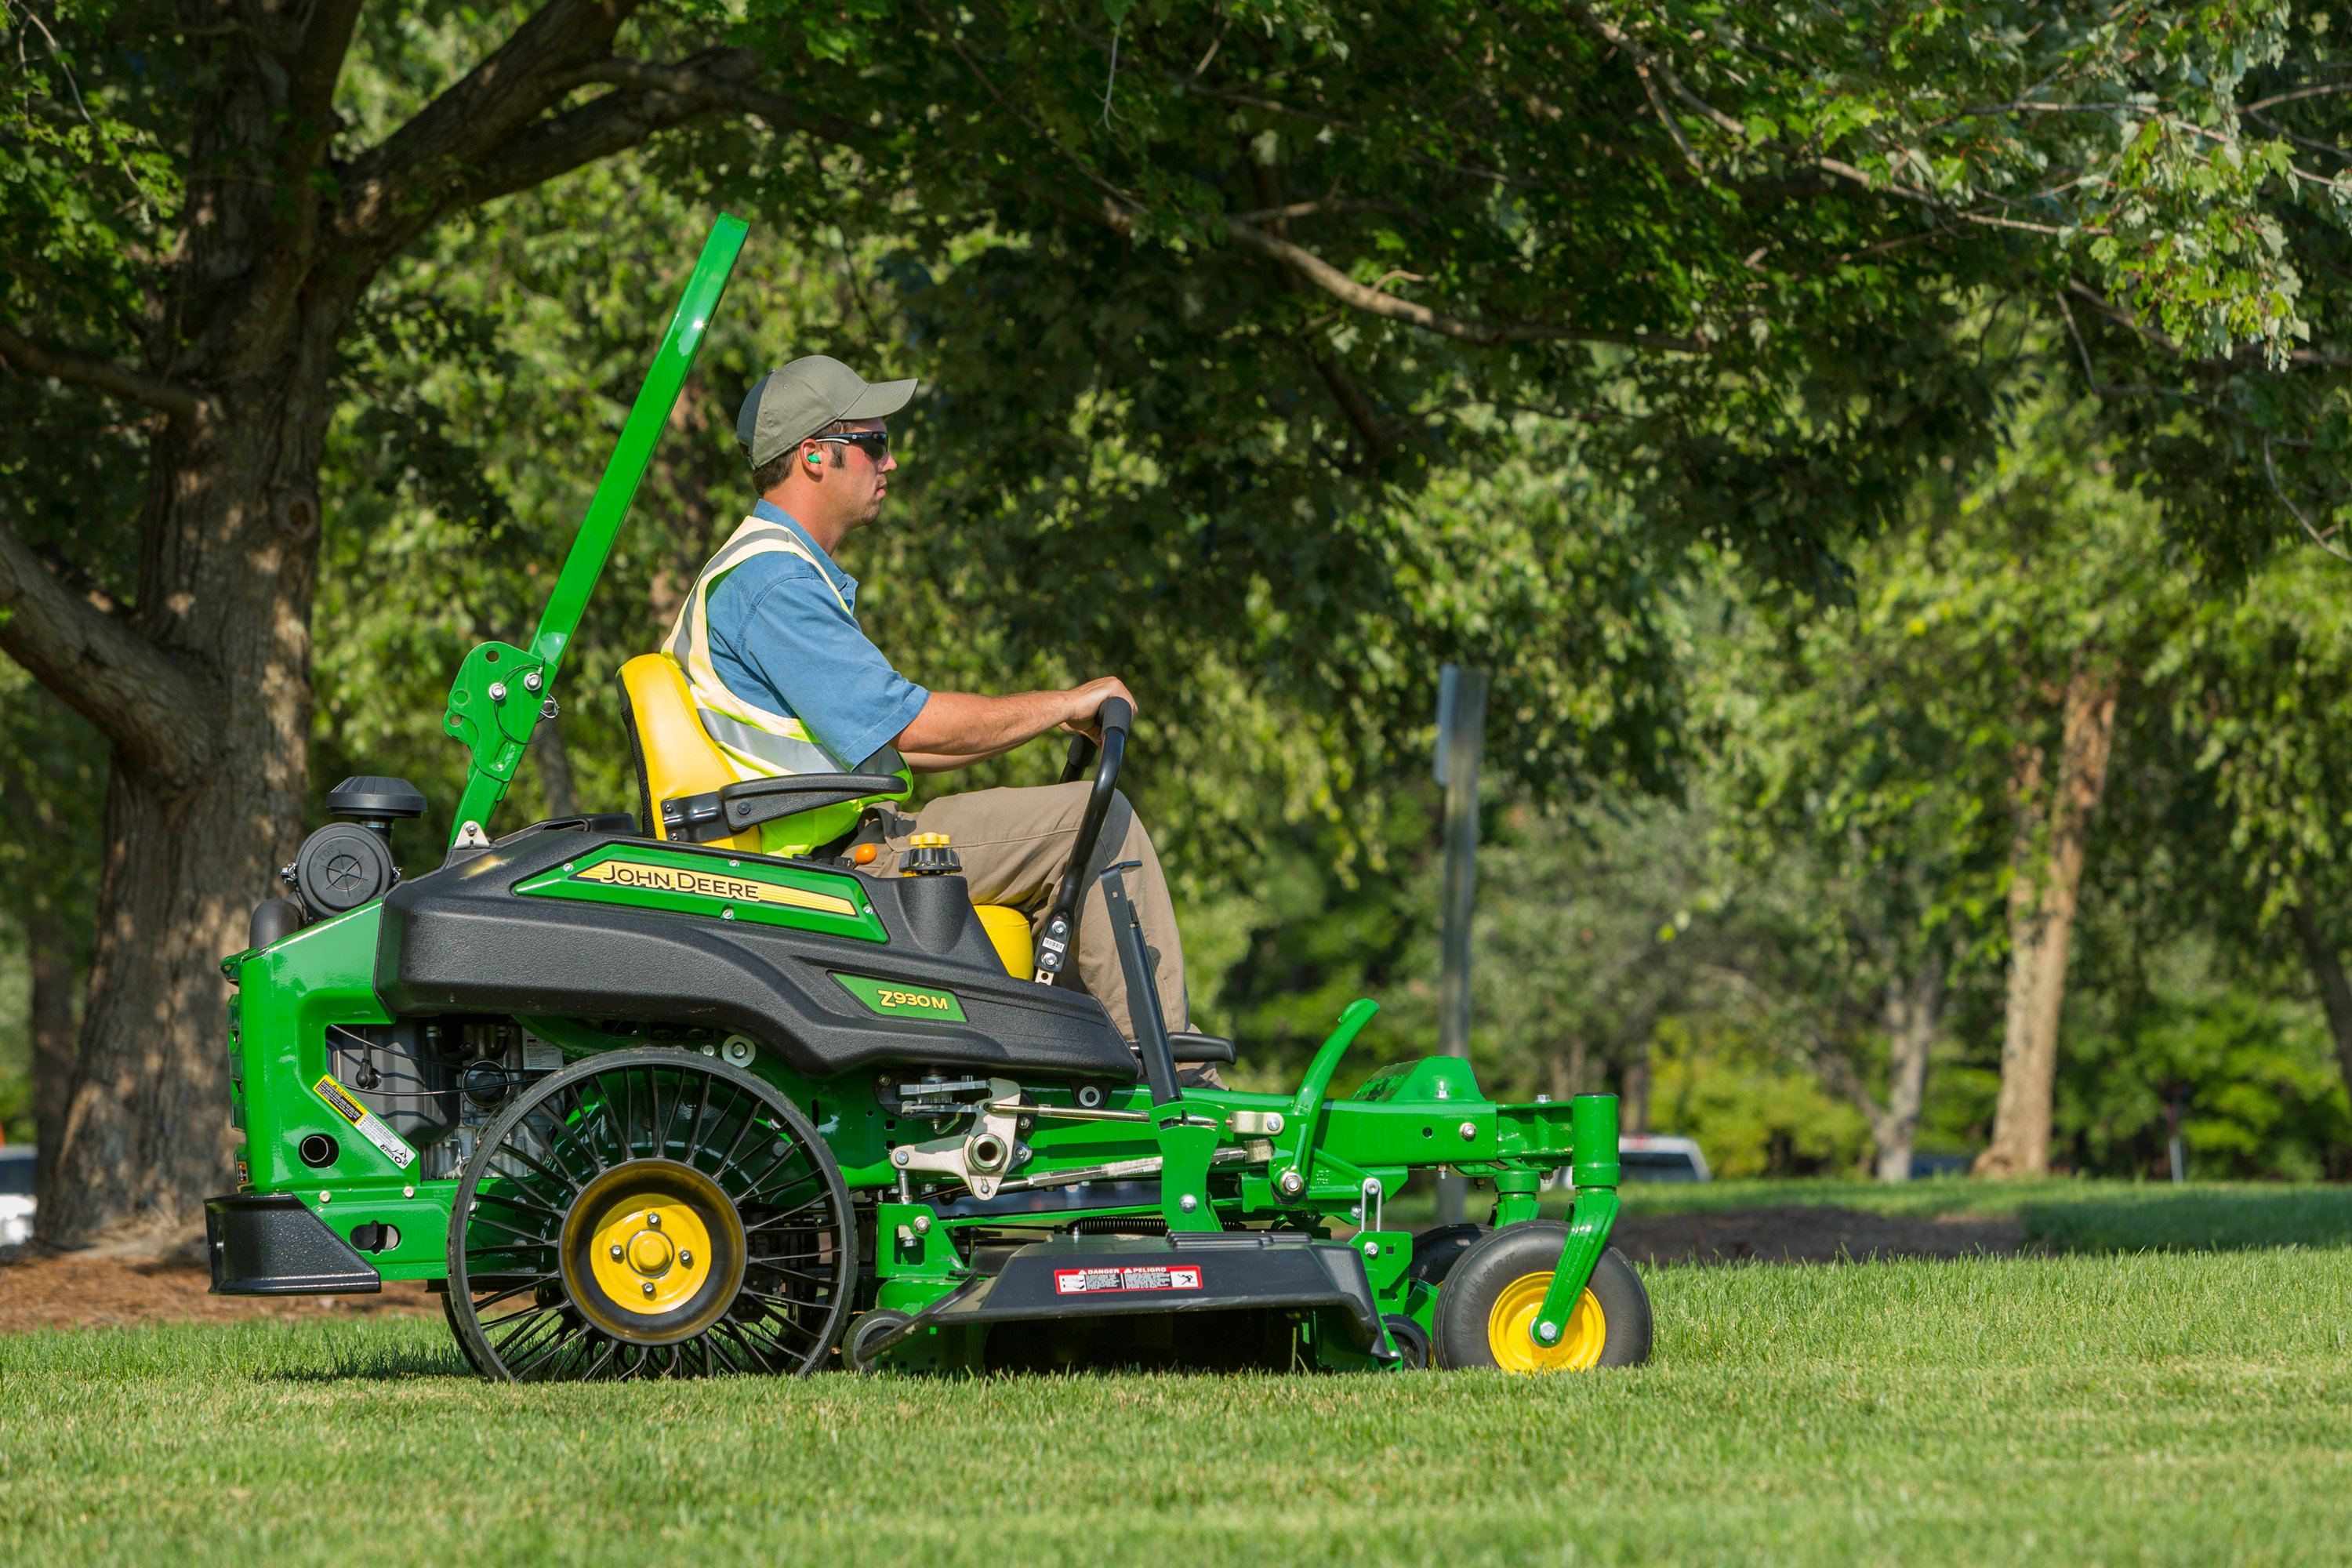 The Michelin X Tweel Turf eliminates flats and is nearly maintenance free (Source: John Deere)